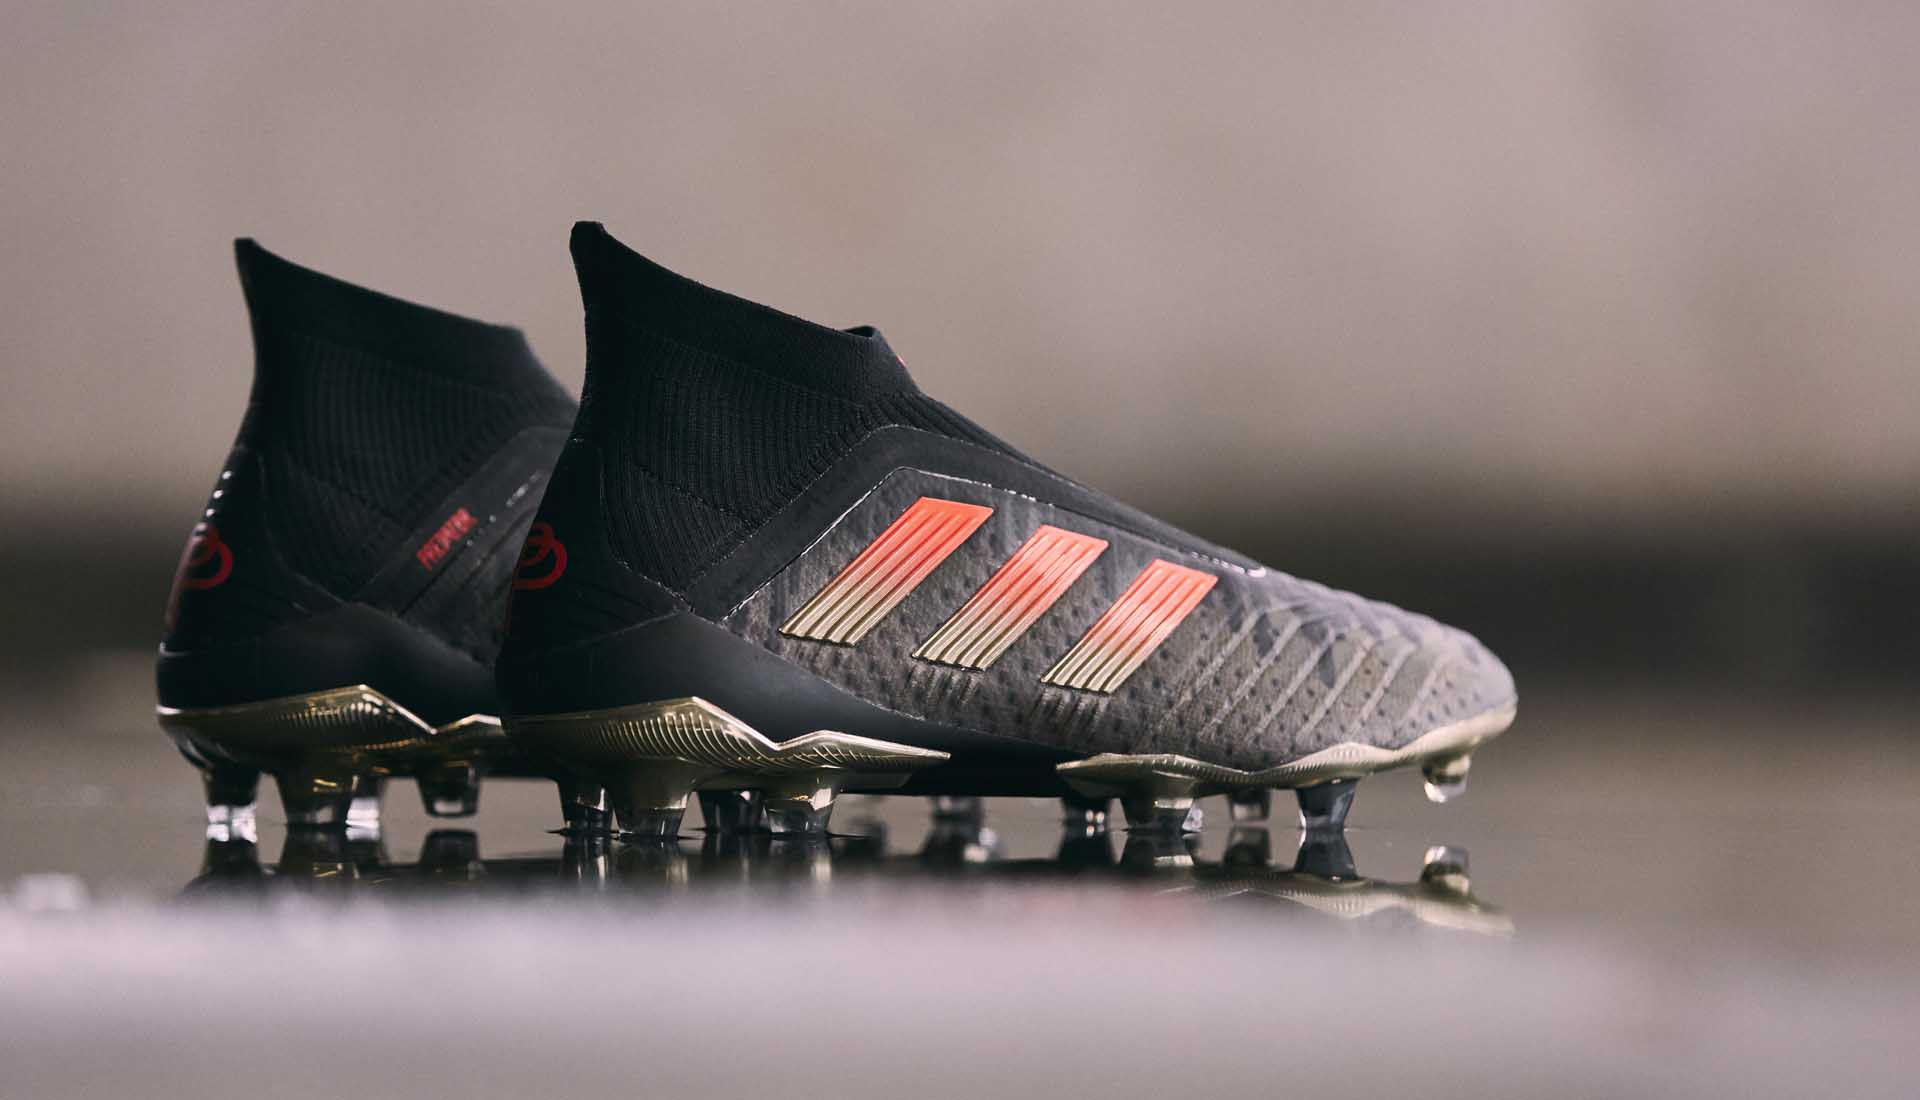 eb8842acd29c adidas Launch Paul Pogba Season 4 Predator 18+ - SoccerBible